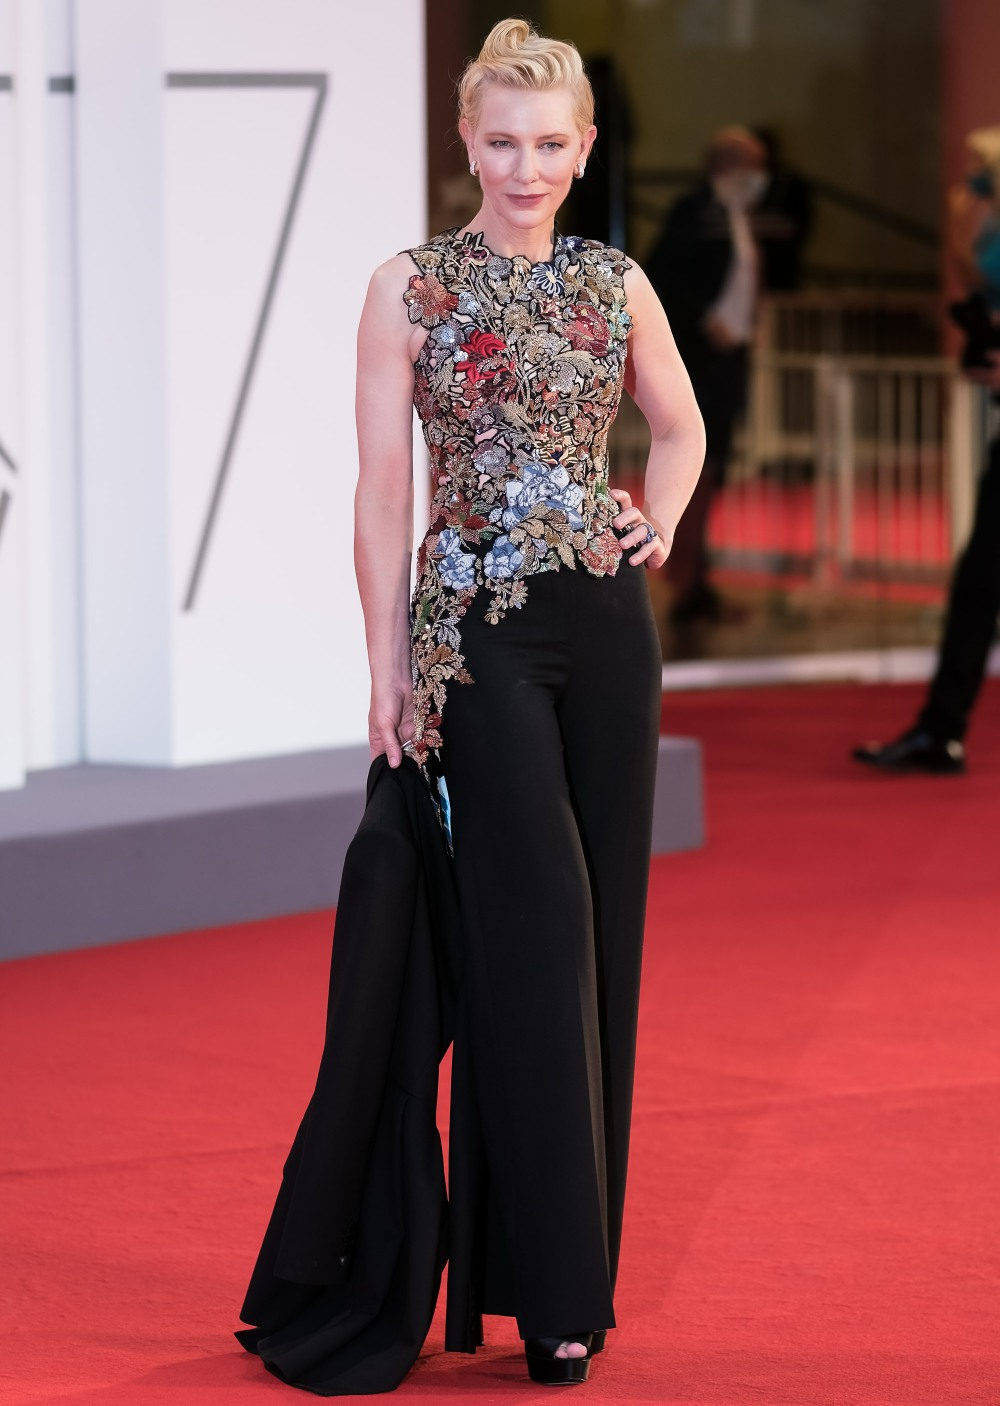 Cate Blanchett poses on the red carpet at the a screening of Amants ( Lovers ) for the 77th Venice International Film Festival ( La Biennale Di Veneziale ) on Thursday 3 September 2020